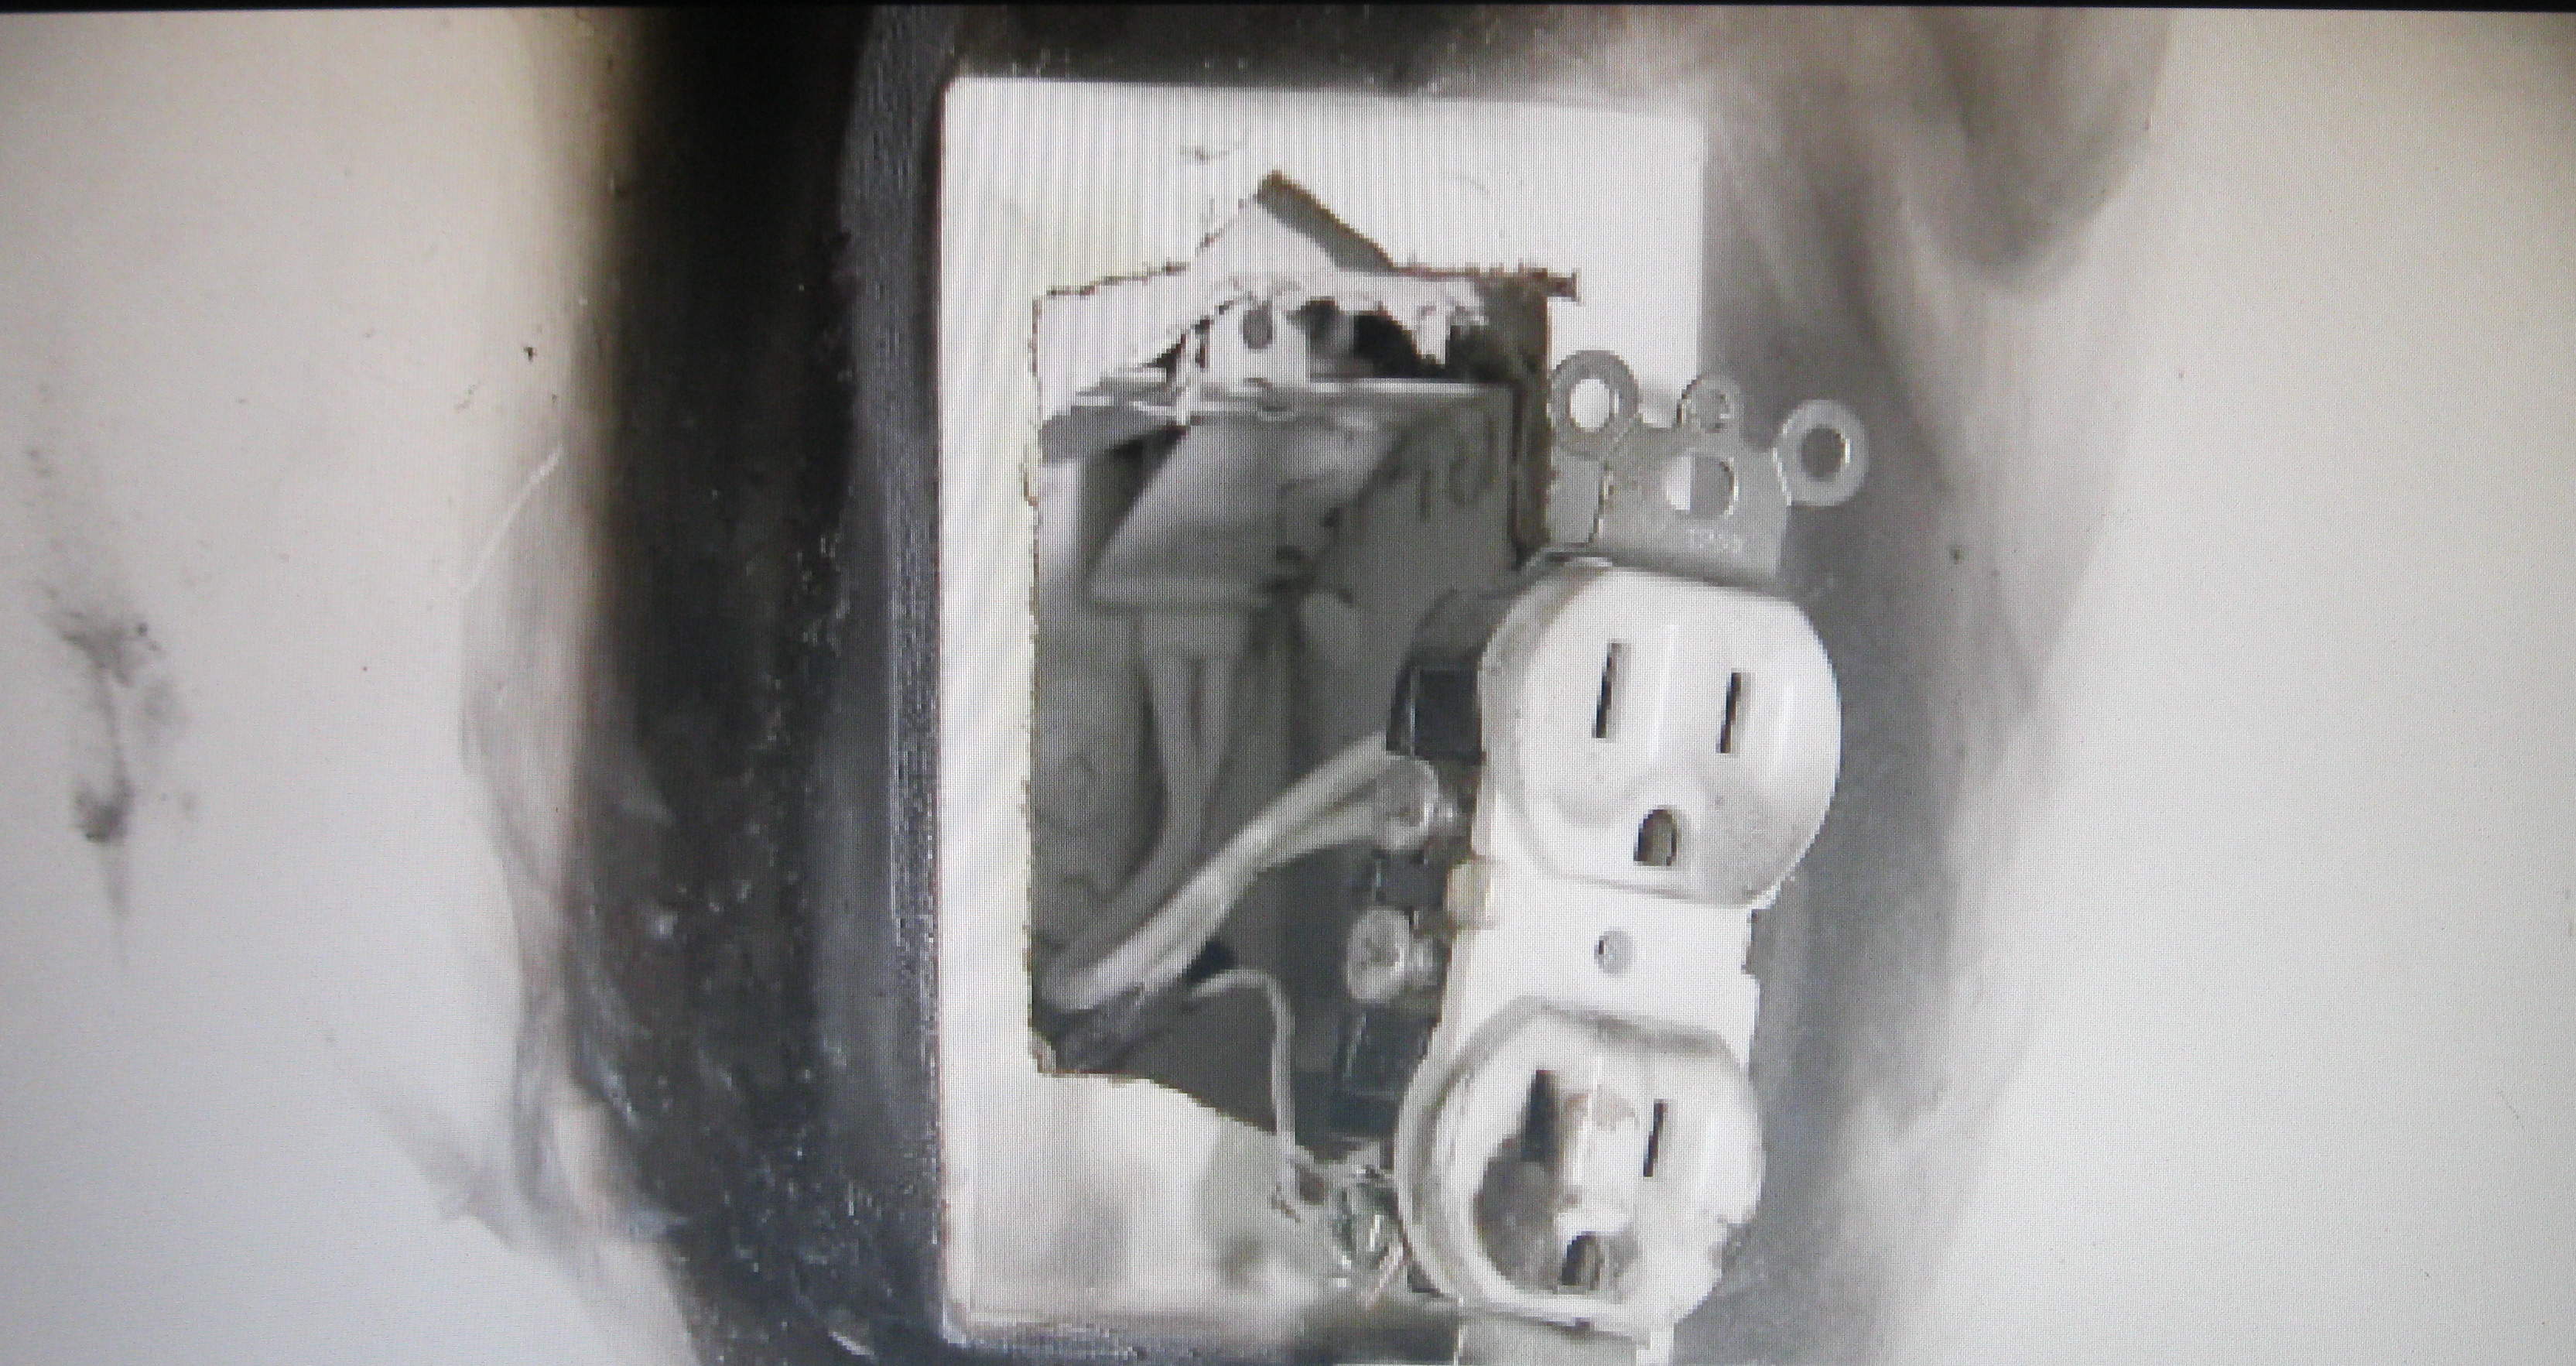 Smart Meter Fires Emf Safety Network Using An Electrical To Troubleshoot Wiring Problems Youtube Img 2199